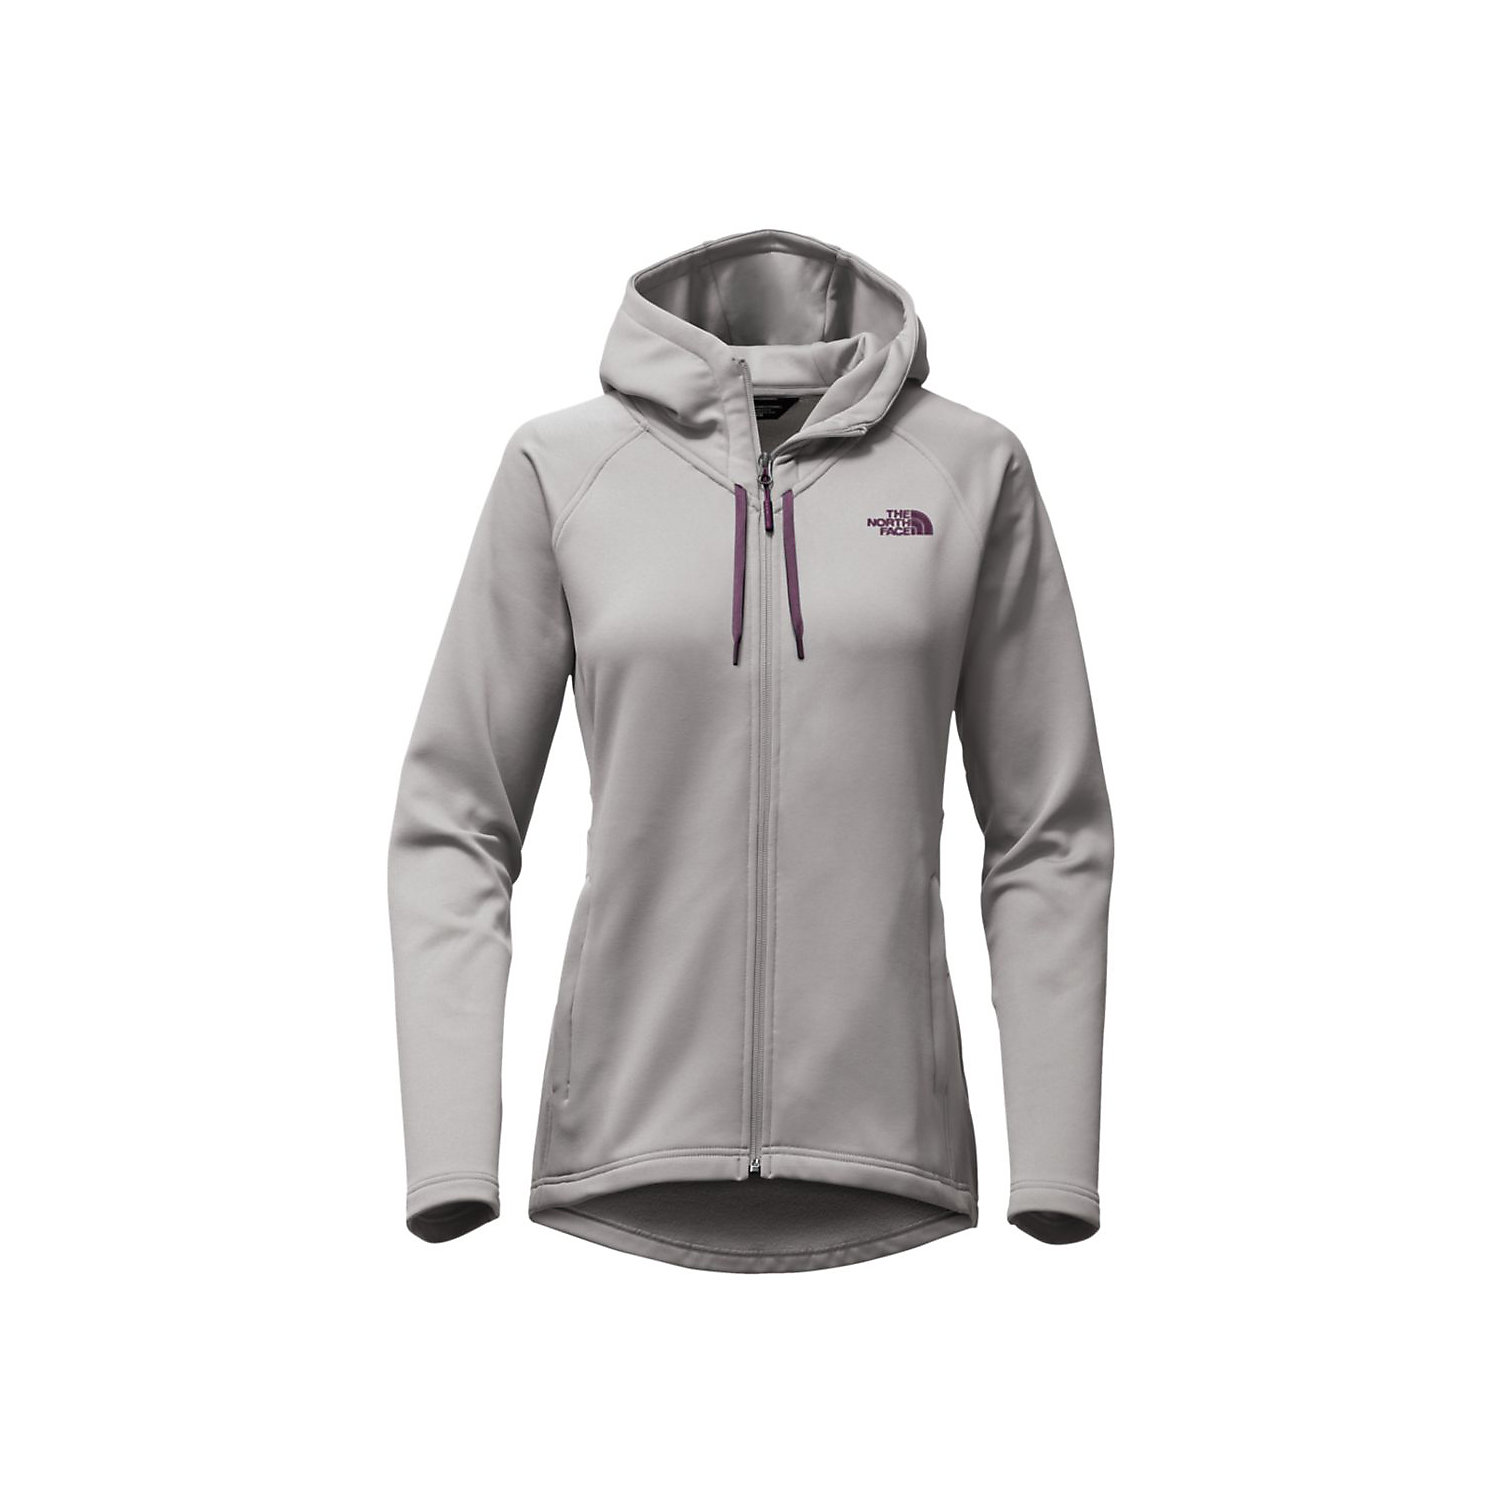 ad2d1f51e The North Face Women's Momentum Hoodie